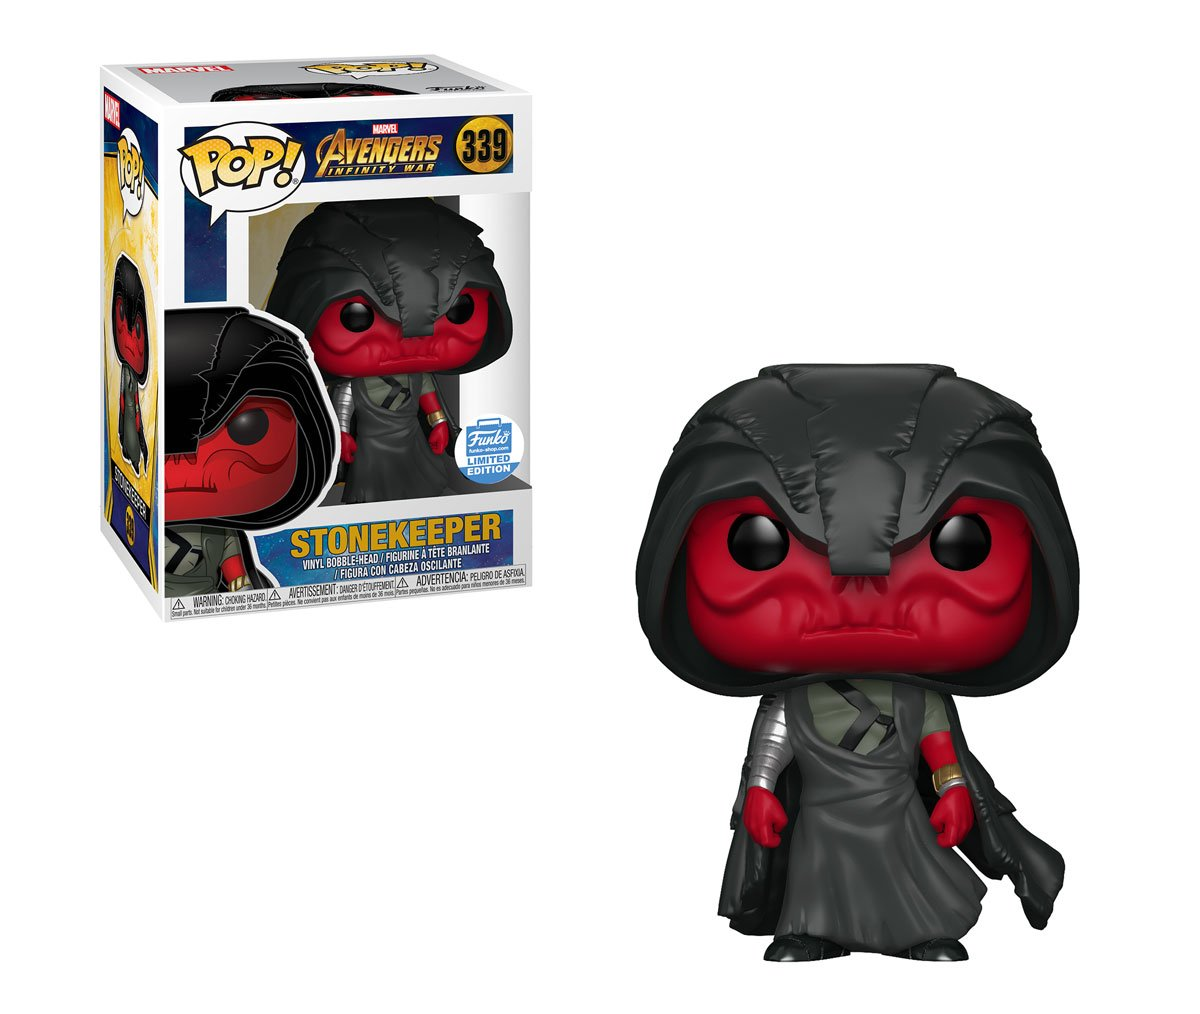 RT & follow @OriginalFunko for a chance to WIN this Funko Shop exclusive Stonekeeper Pop! #Avengers #InfinityWar